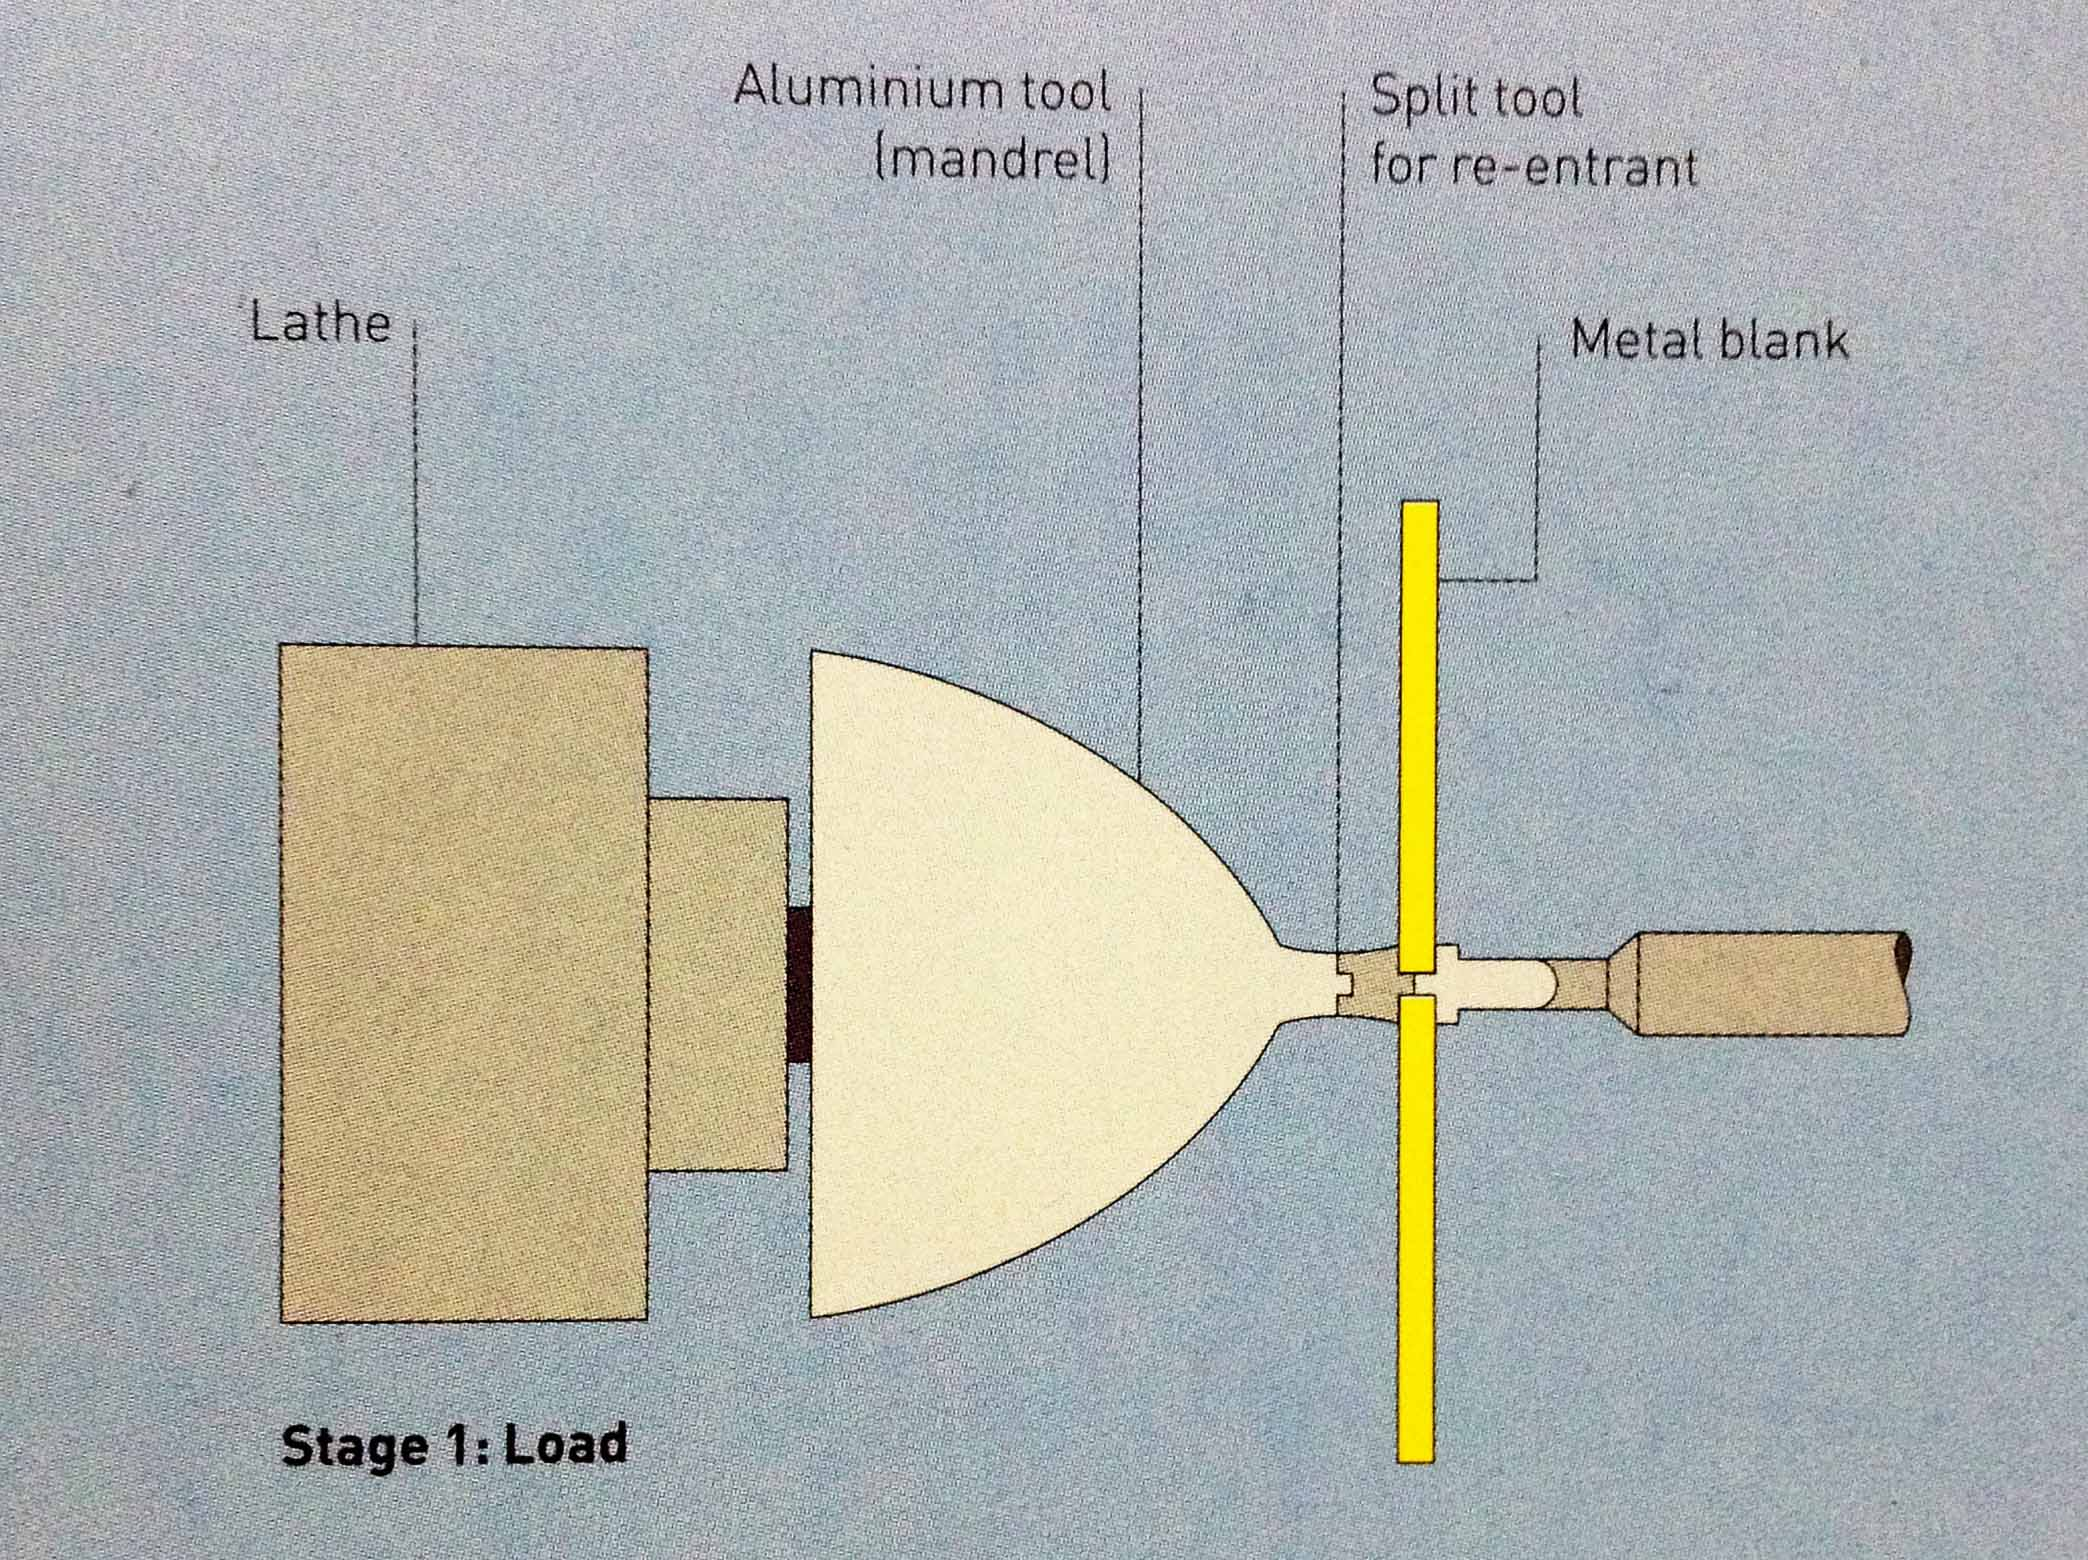 207f4c50fab239345c593cb4ad6eaa3020150329130716 - What is metal spinning process